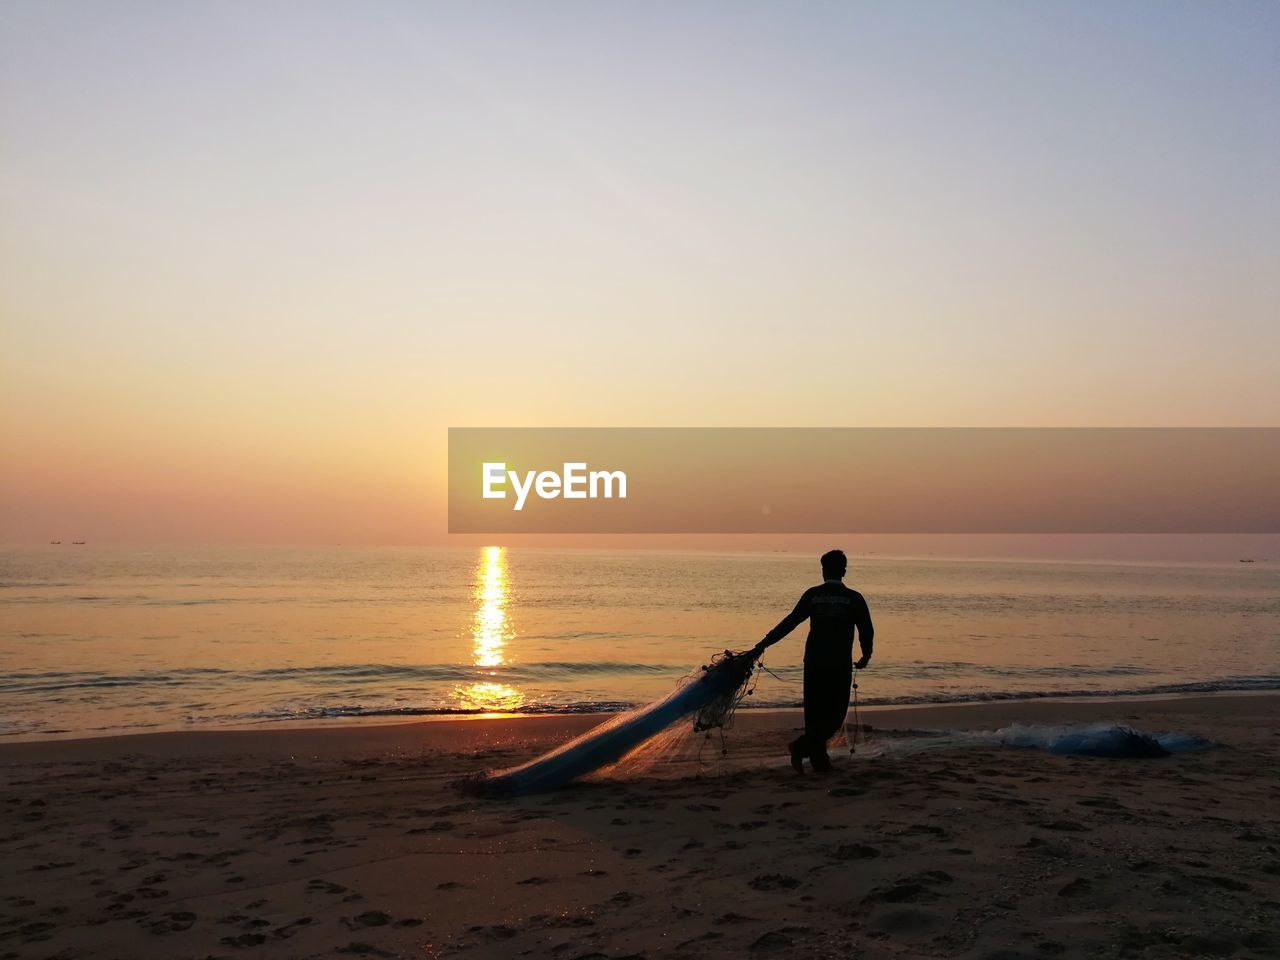 sunset, beach, sea, nature, water, real people, sand, beauty in nature, shore, horizon over water, scenics, sky, full length, sun, silhouette, outdoors, lifestyles, one person, standing, clear sky, men, wave, day, people